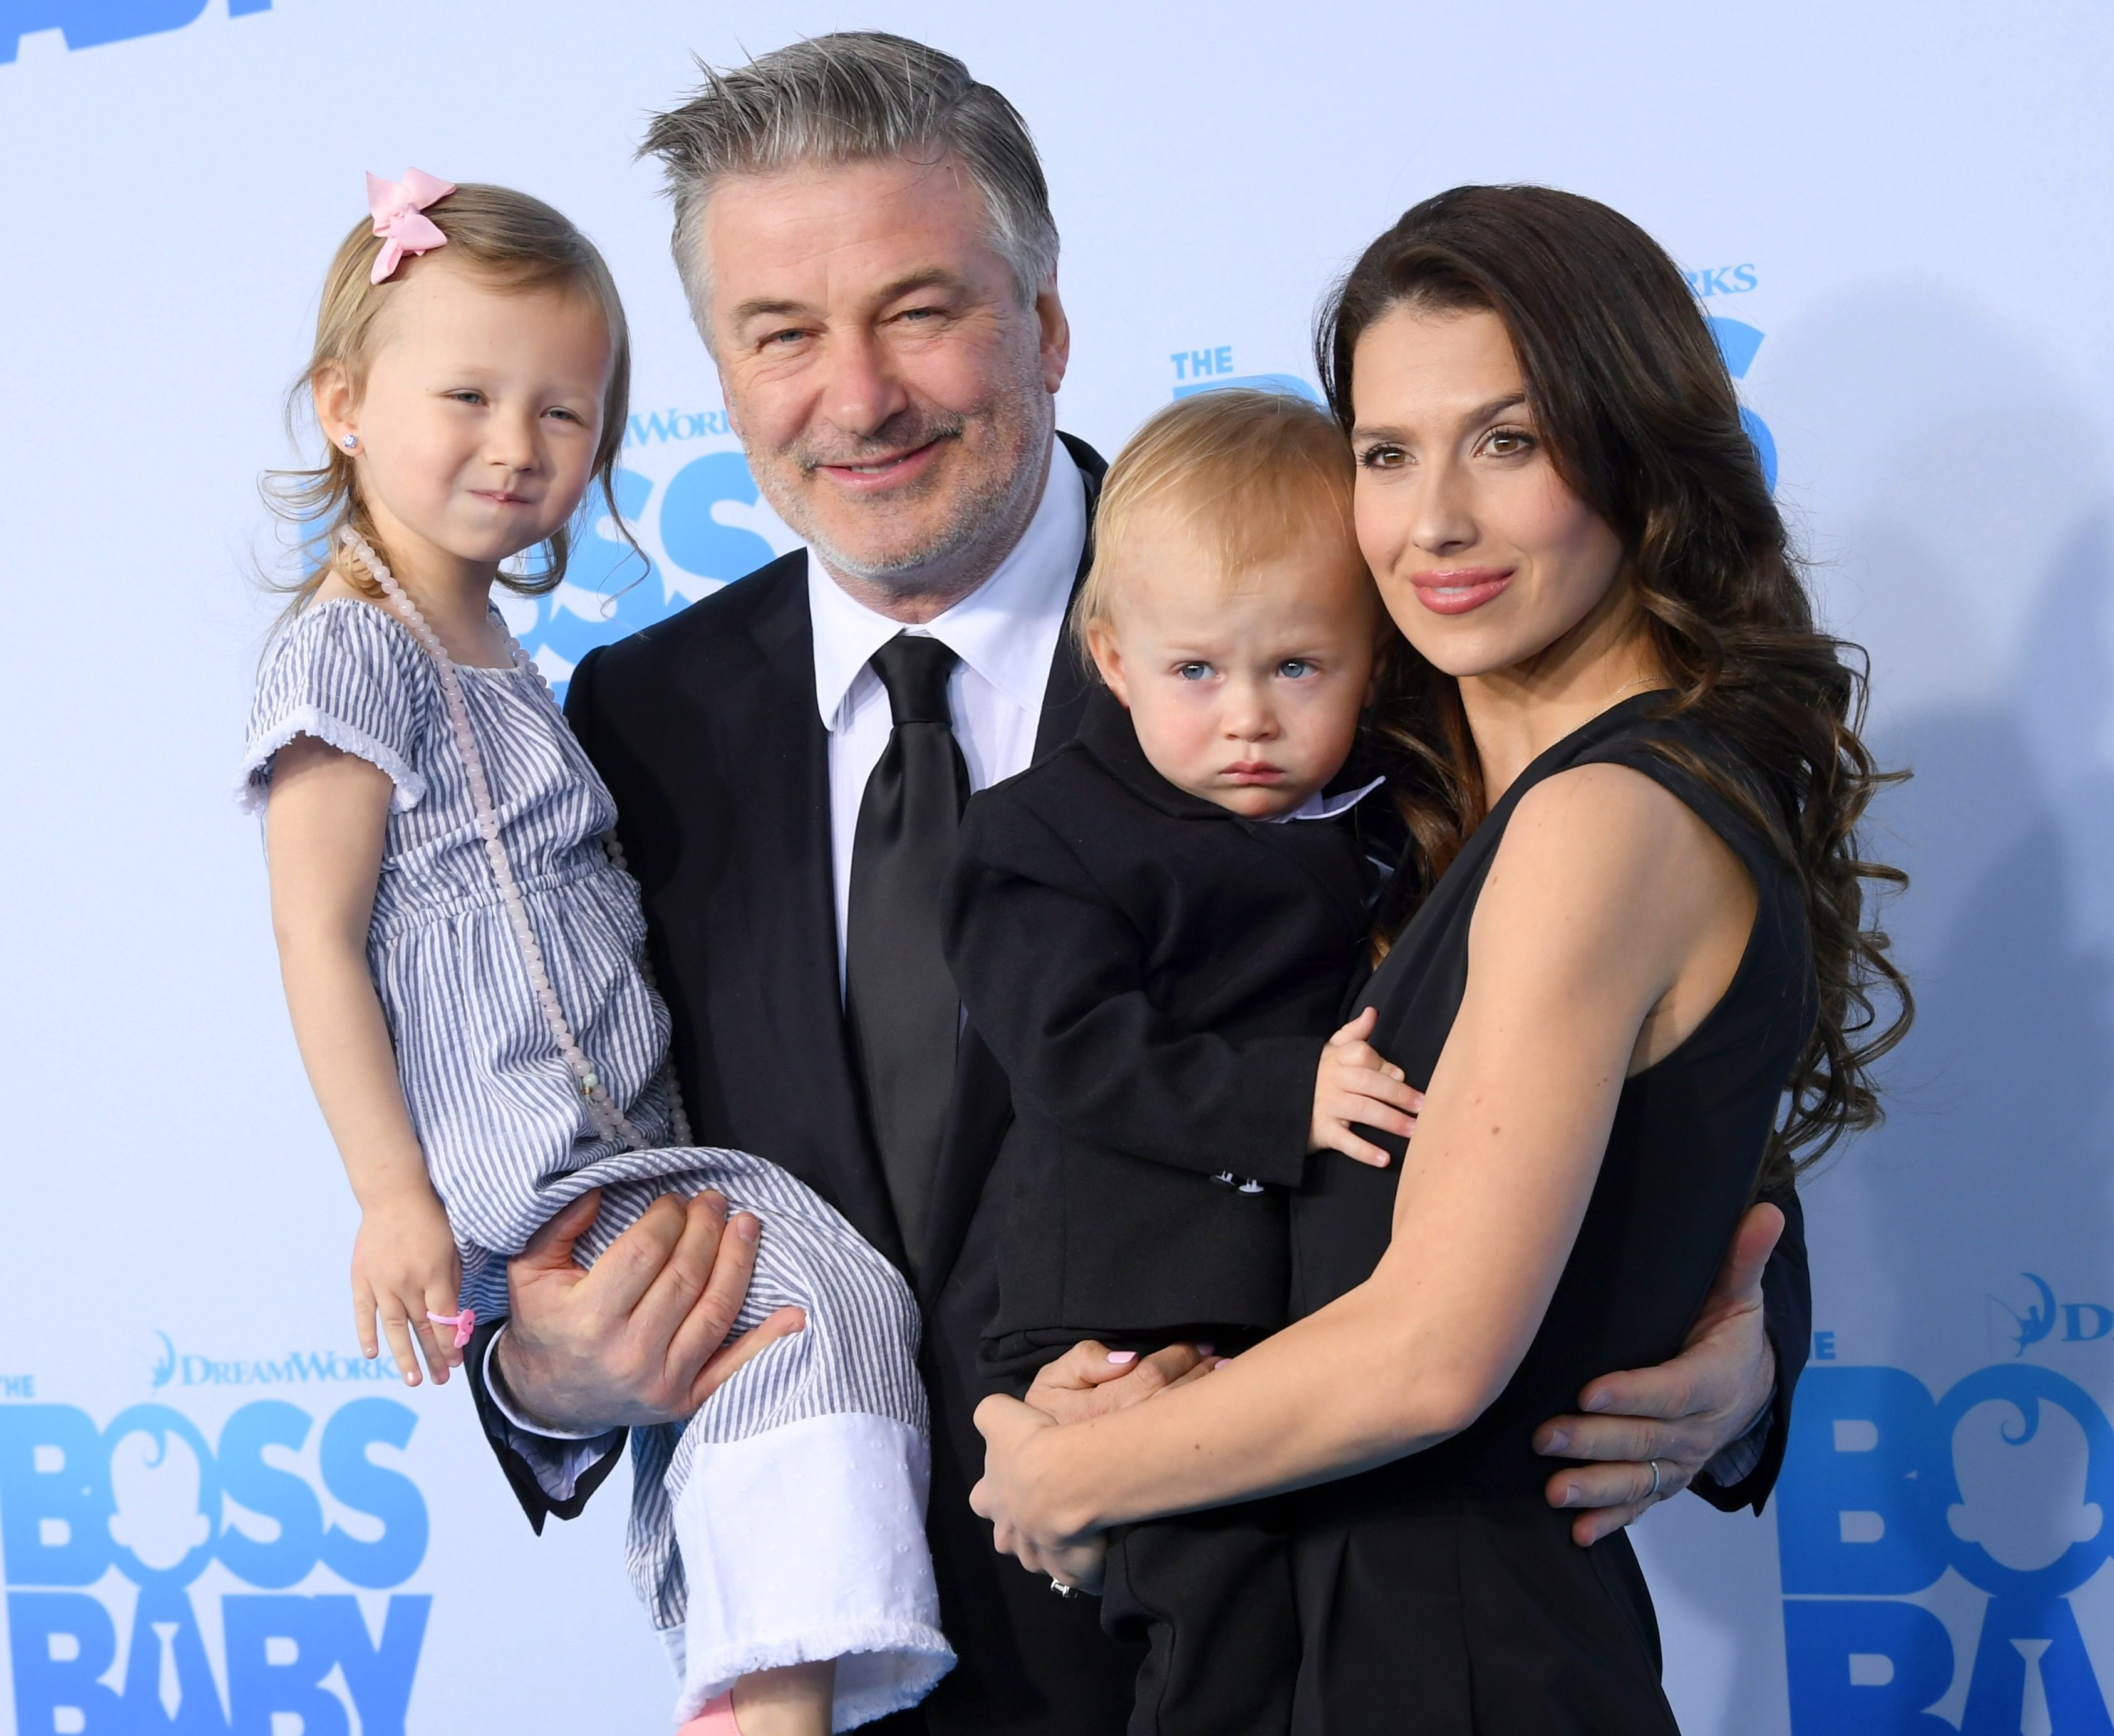 Devastated: Alec Baldwin's wife Hilaria suffers second miscarriage in a  year - Joy105.com